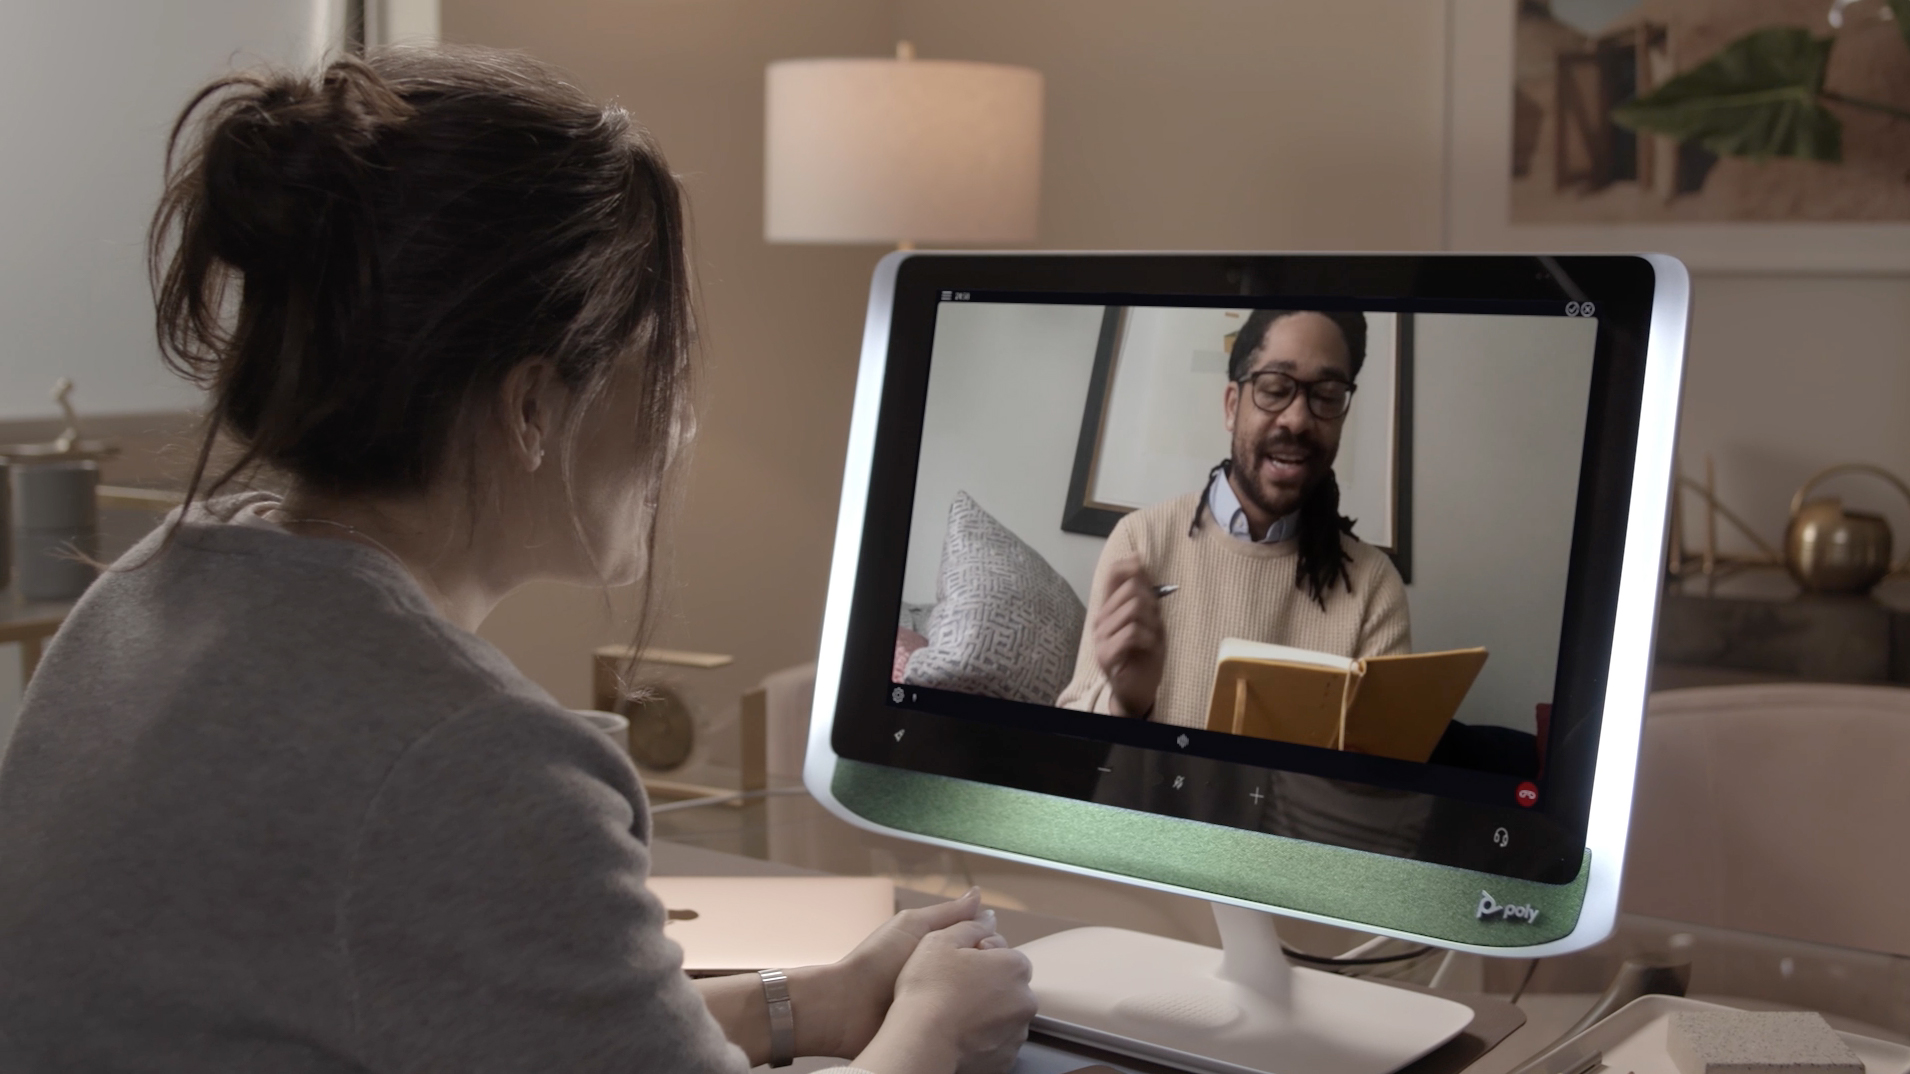 Woman in a virtual meeting with a man reading from a book